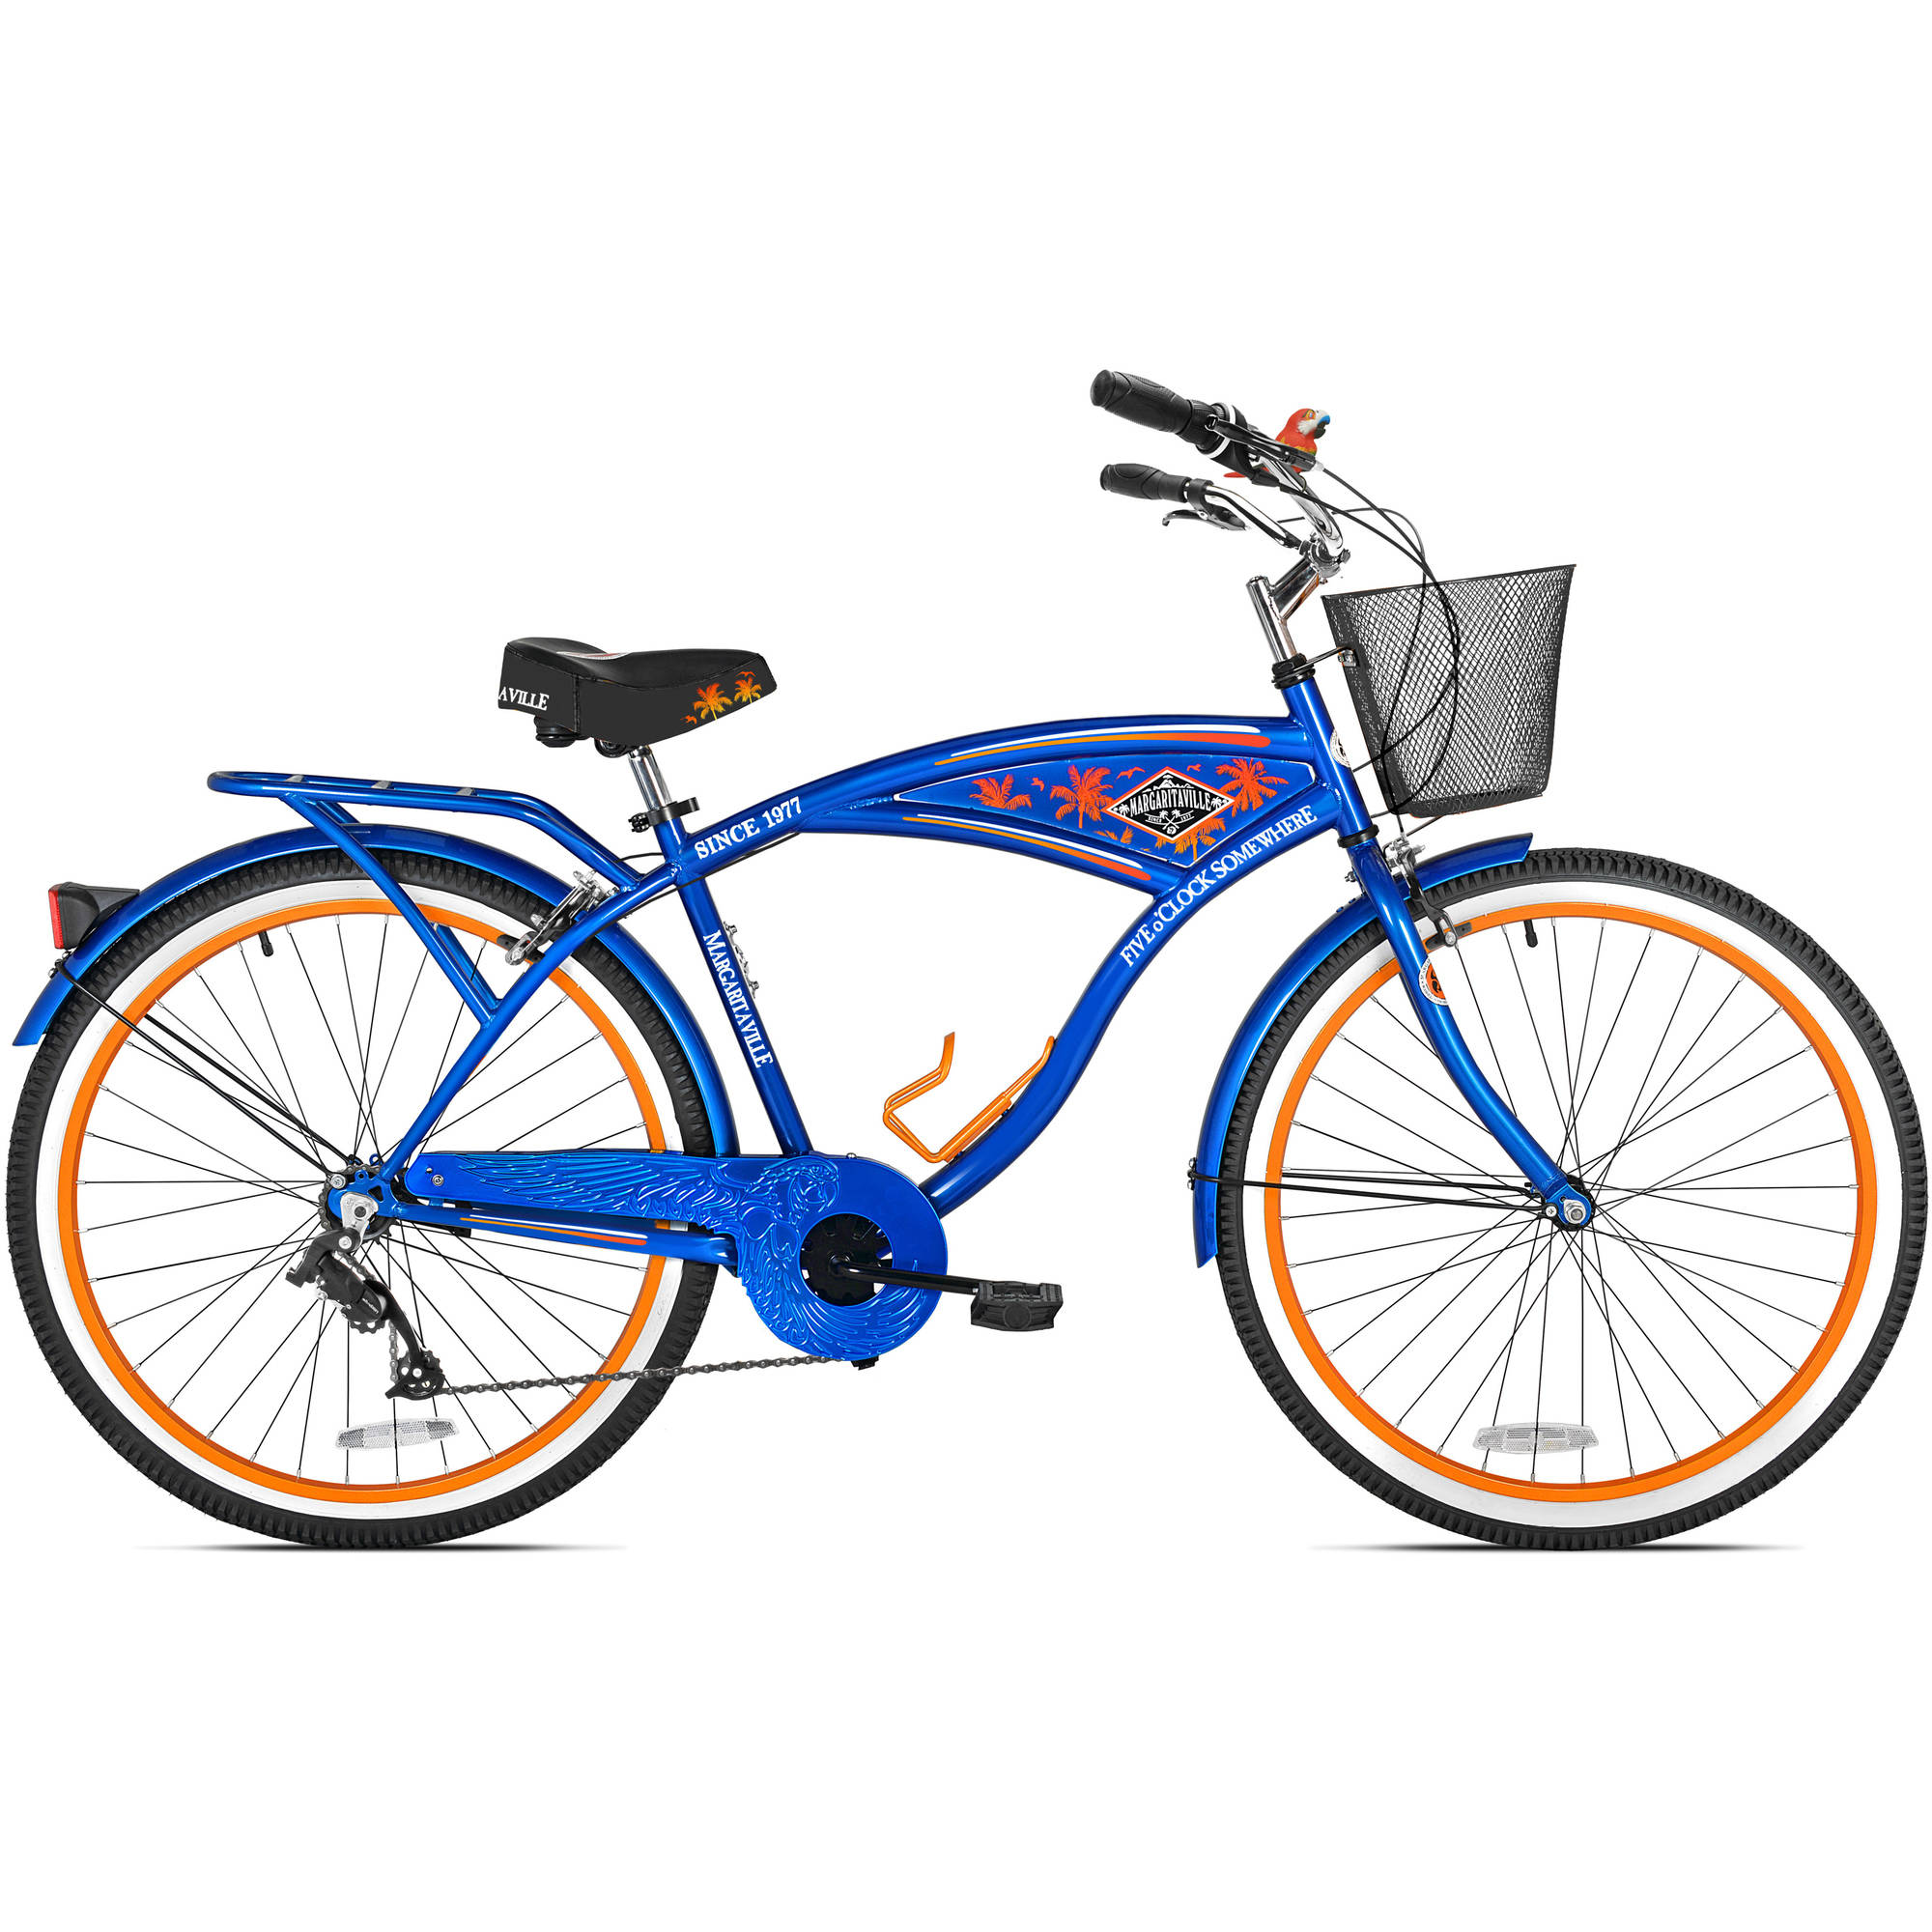 "BCA 26"" Mens Margaritaville Multi-Speed Cruiser Bike"